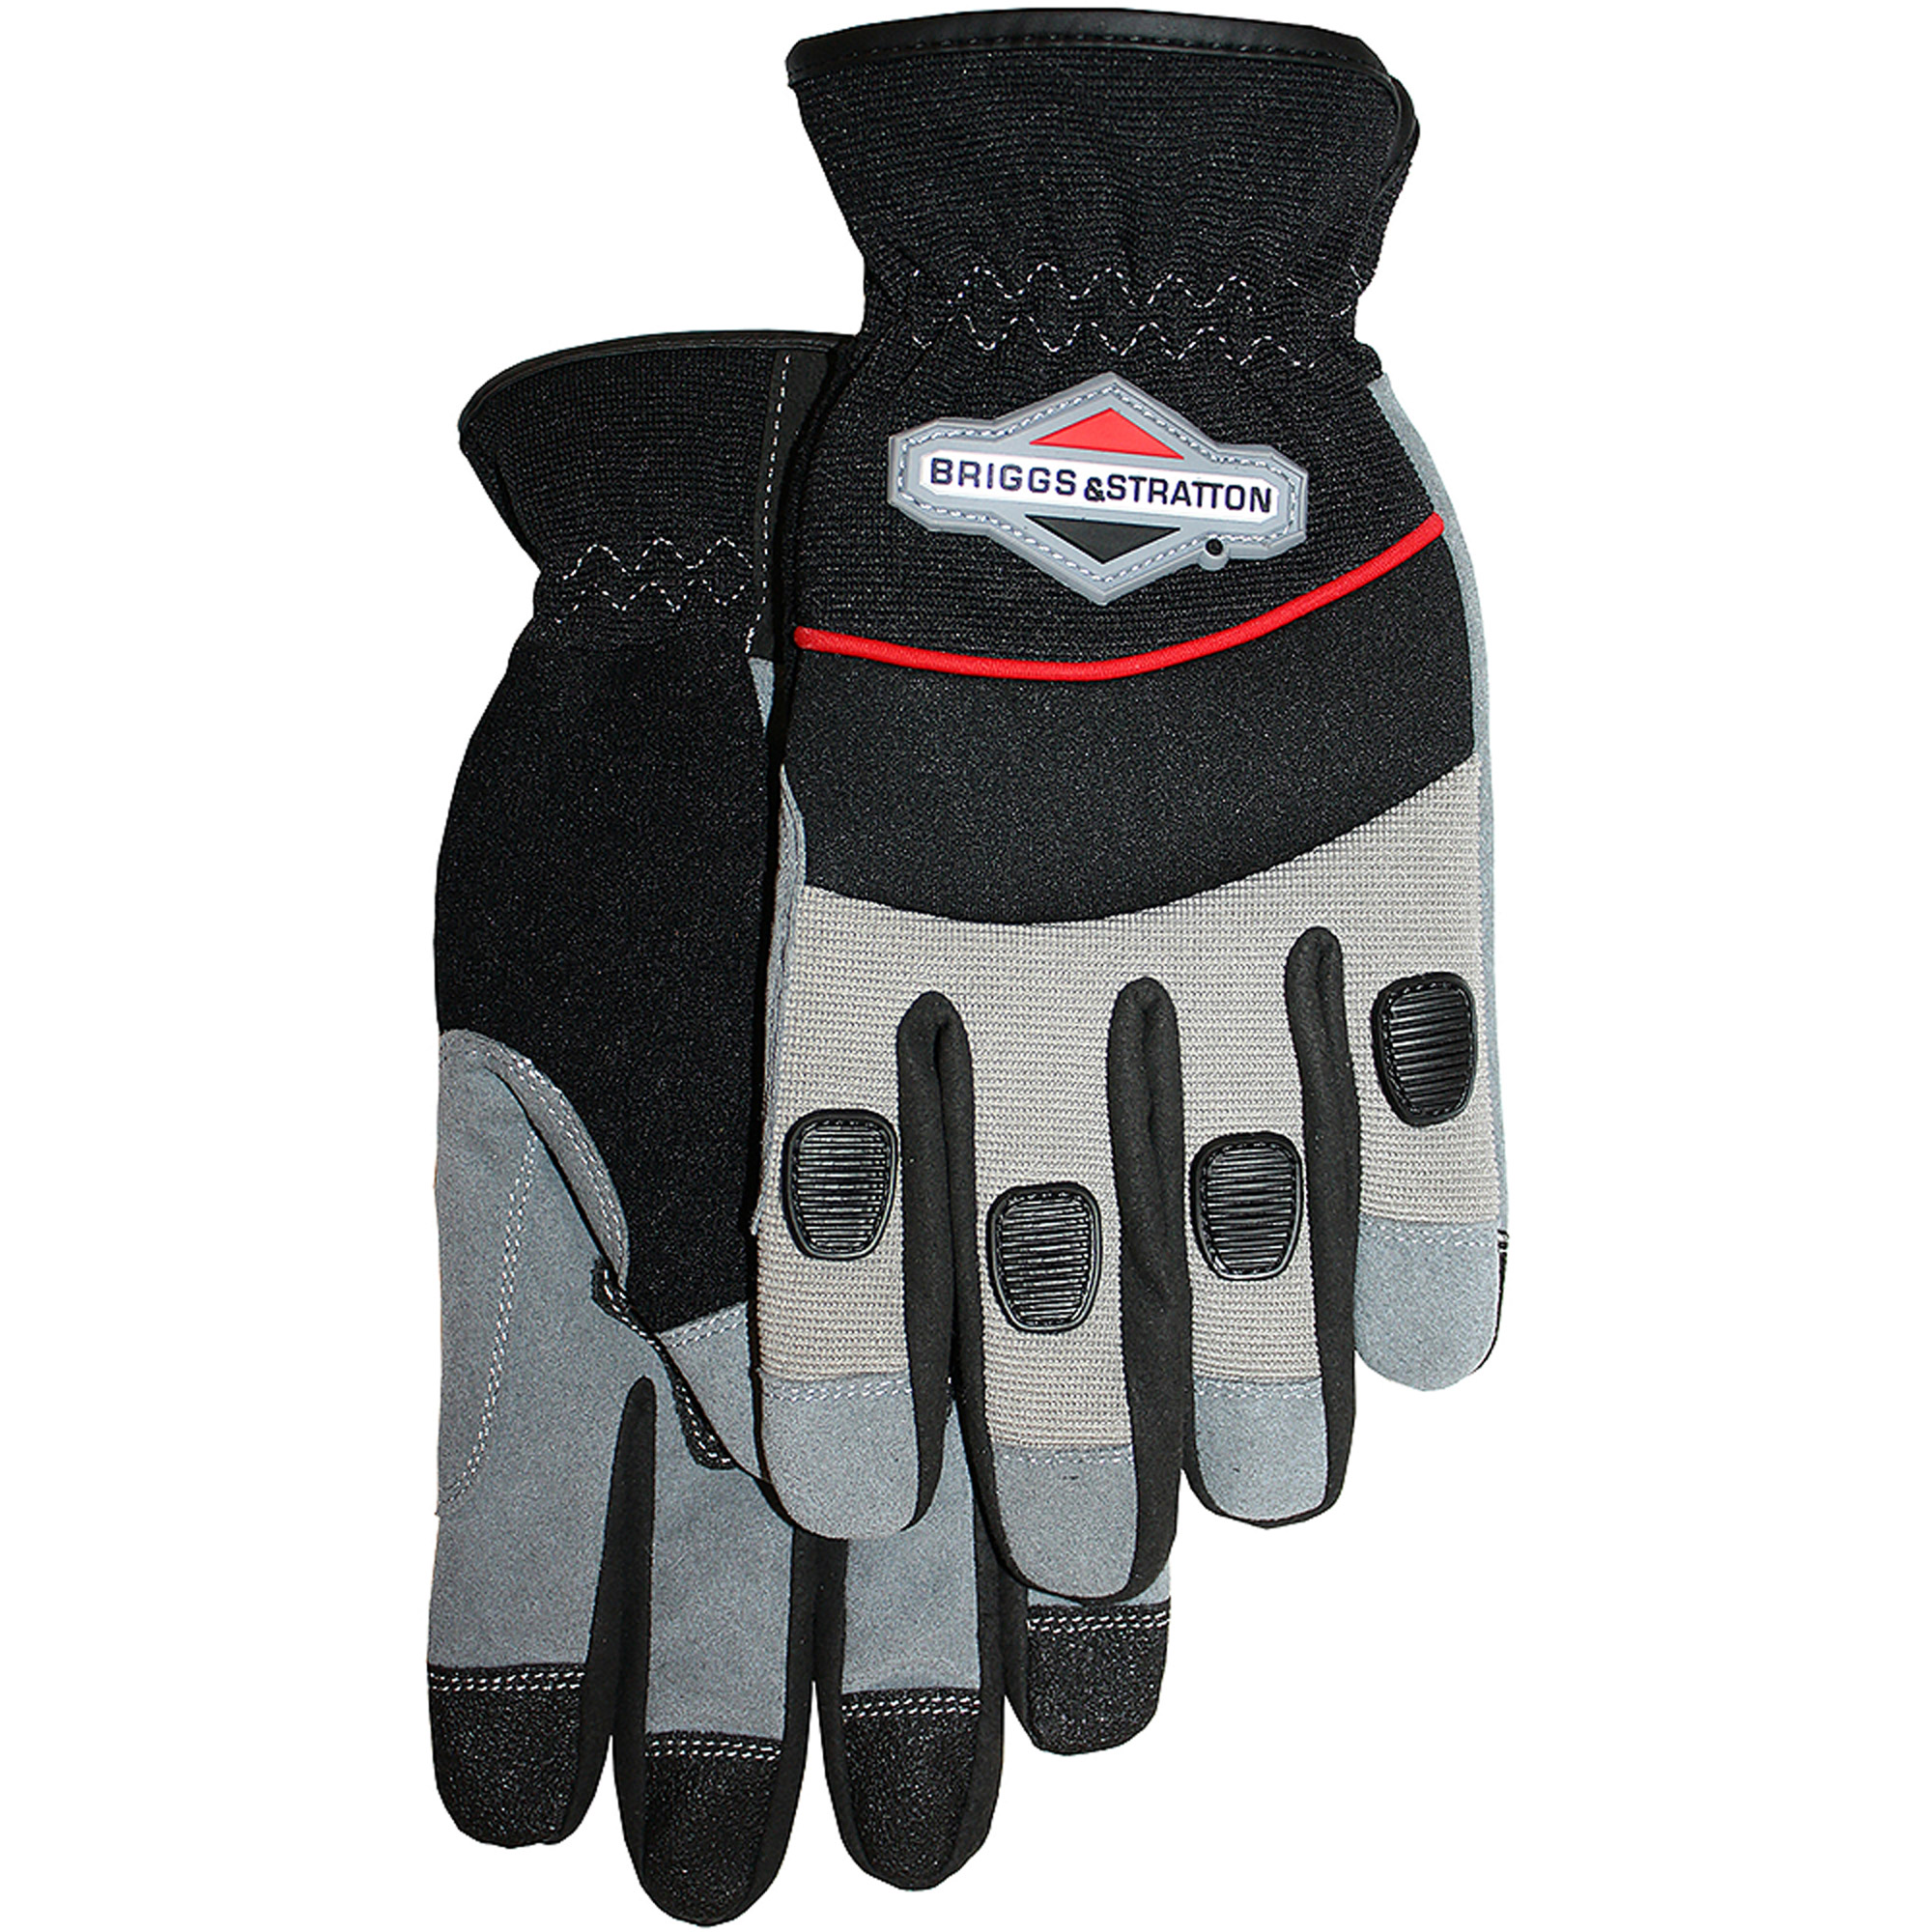 Dexterity Gloves, L Briggs And Stratton